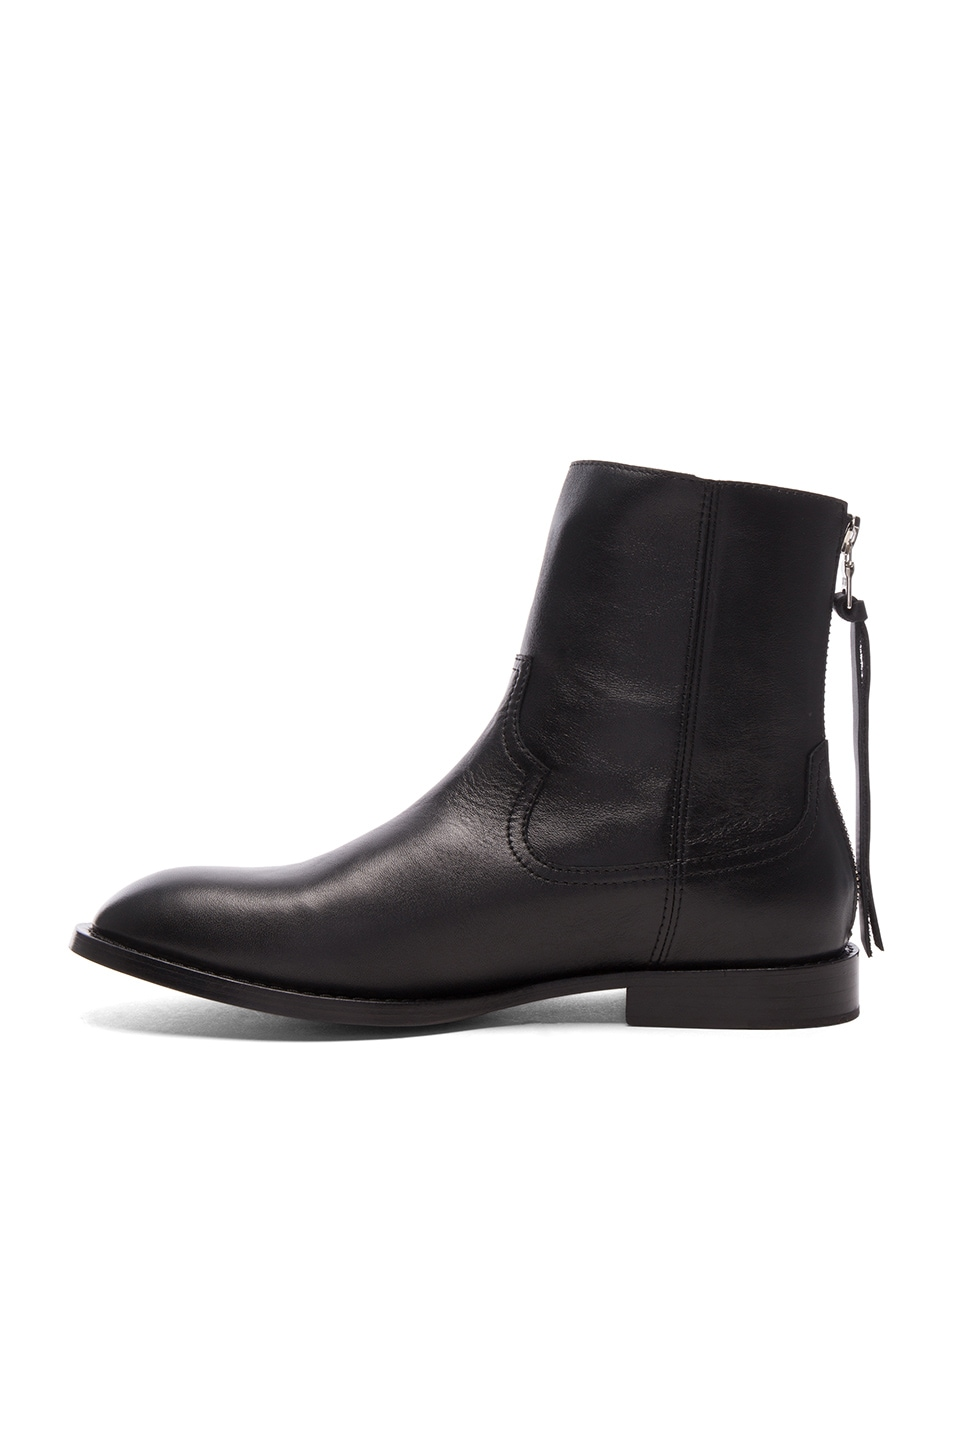 Image 5 of Amiri Leather Shane Boots in Black Leather